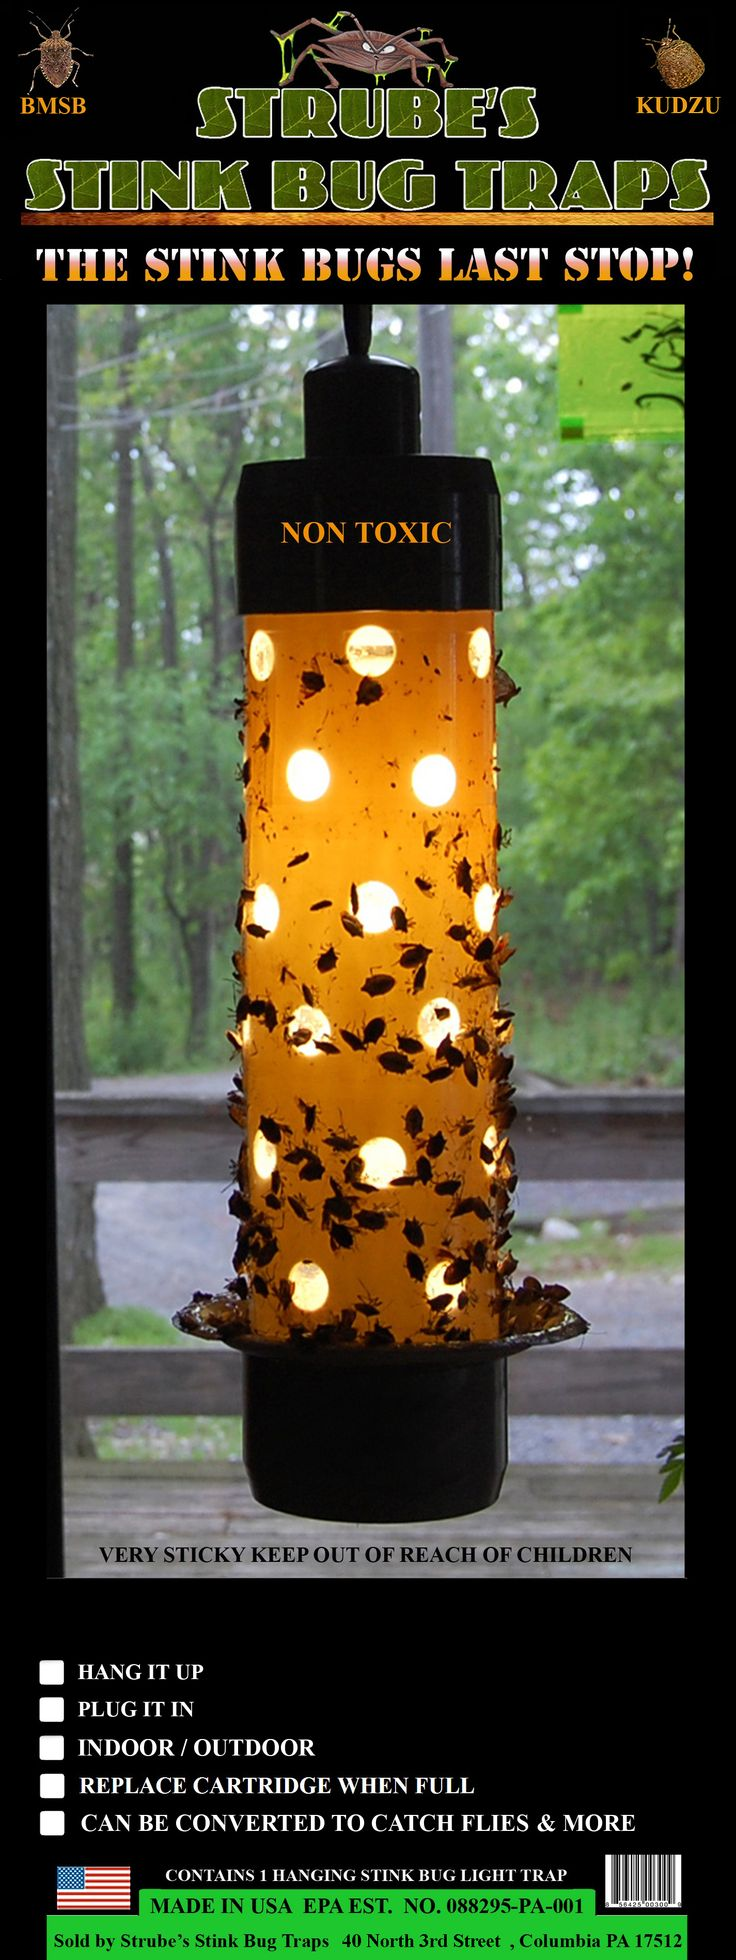 It was 3 years ago today that I began developing stink bug traps after our house was inundated with tens of thousands of them. Shortly after I  launched stinkbugtrapsonline.com to sell the 1st indoor stink bug light trap in the world available to the public. Stop by and read our story, thanks :-)  #tbt #throwbackthursday